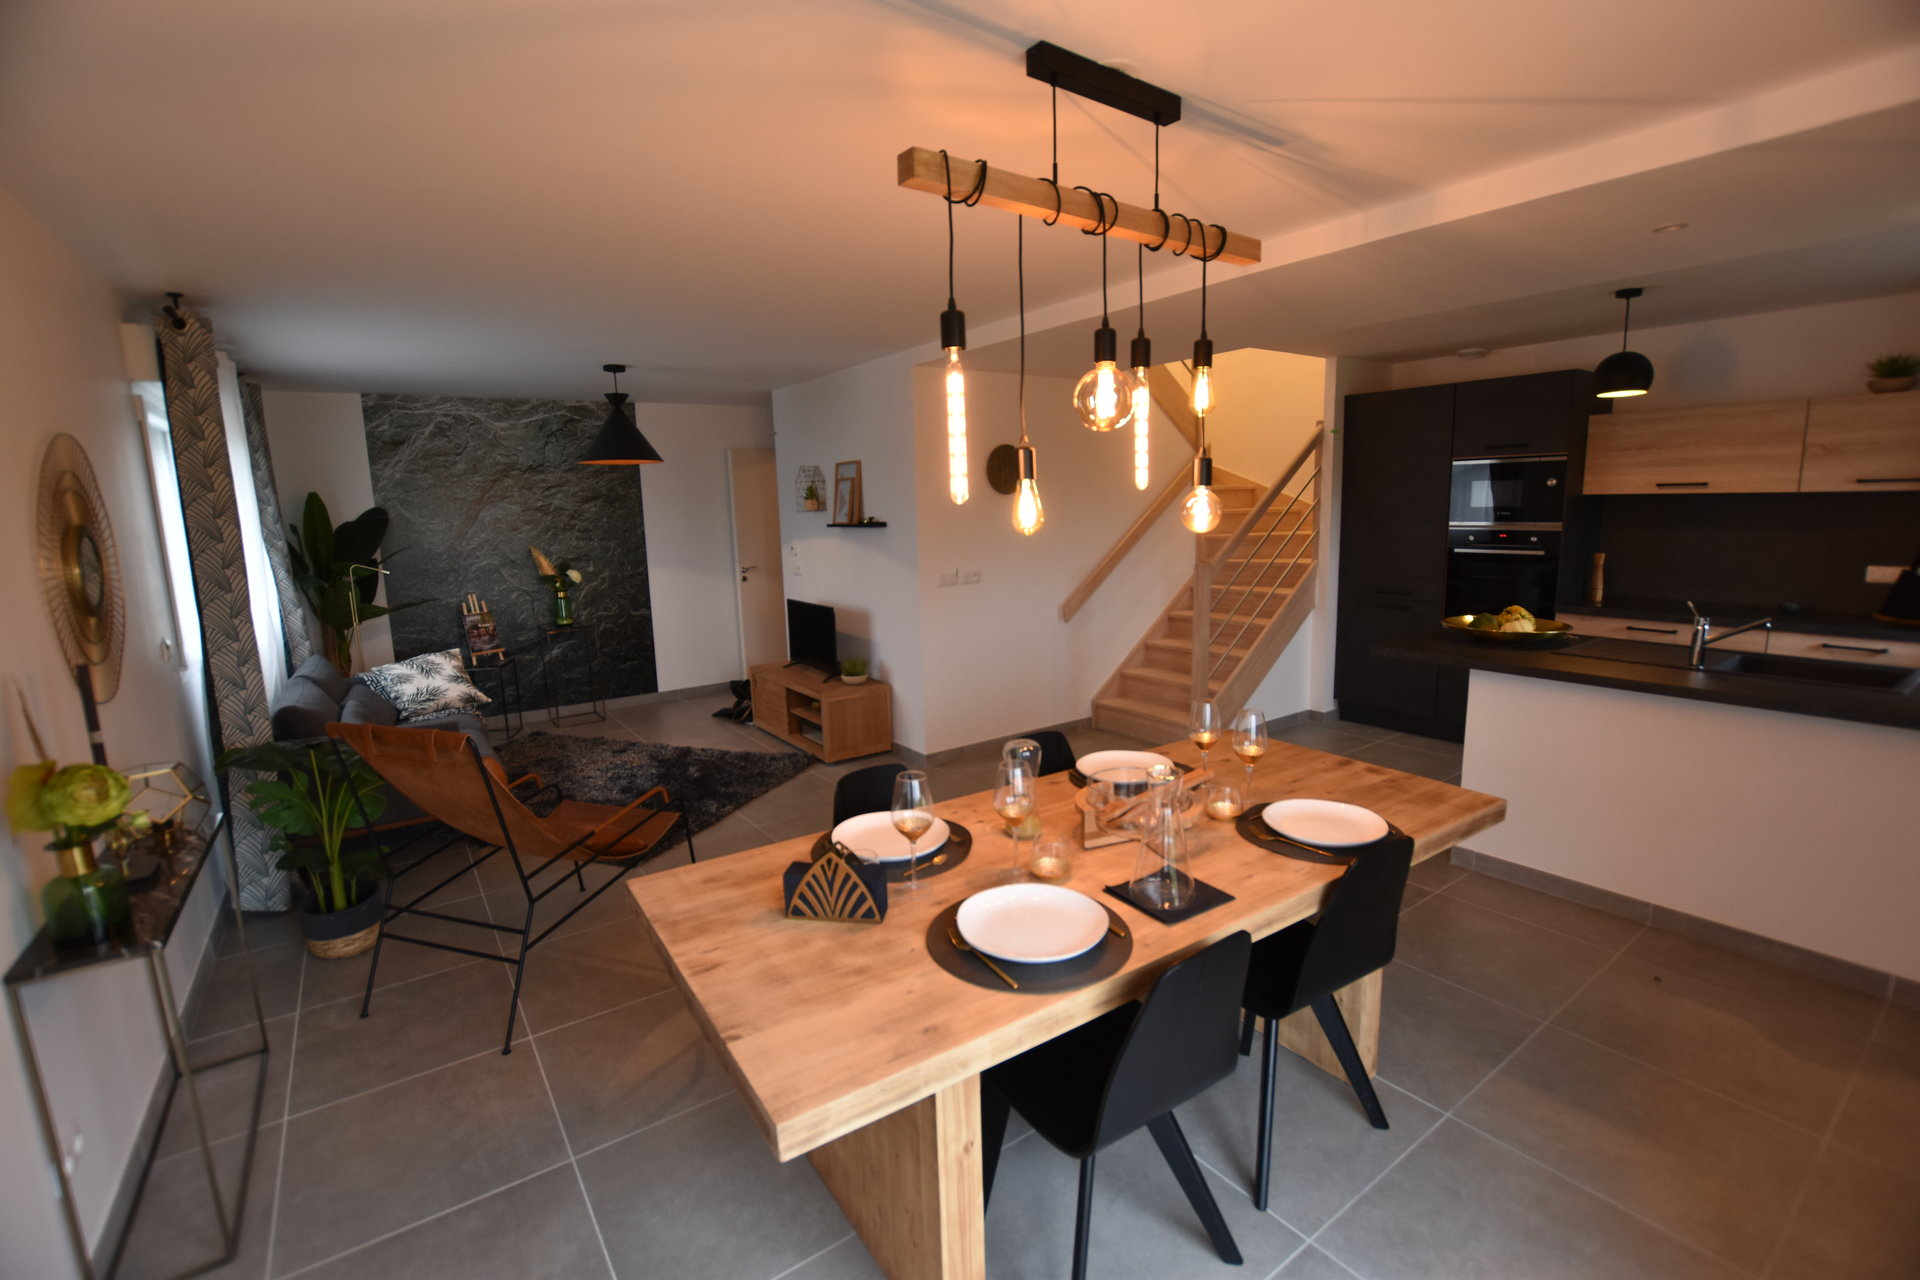 Sale Apartment villa - Vétraz-Monthoux